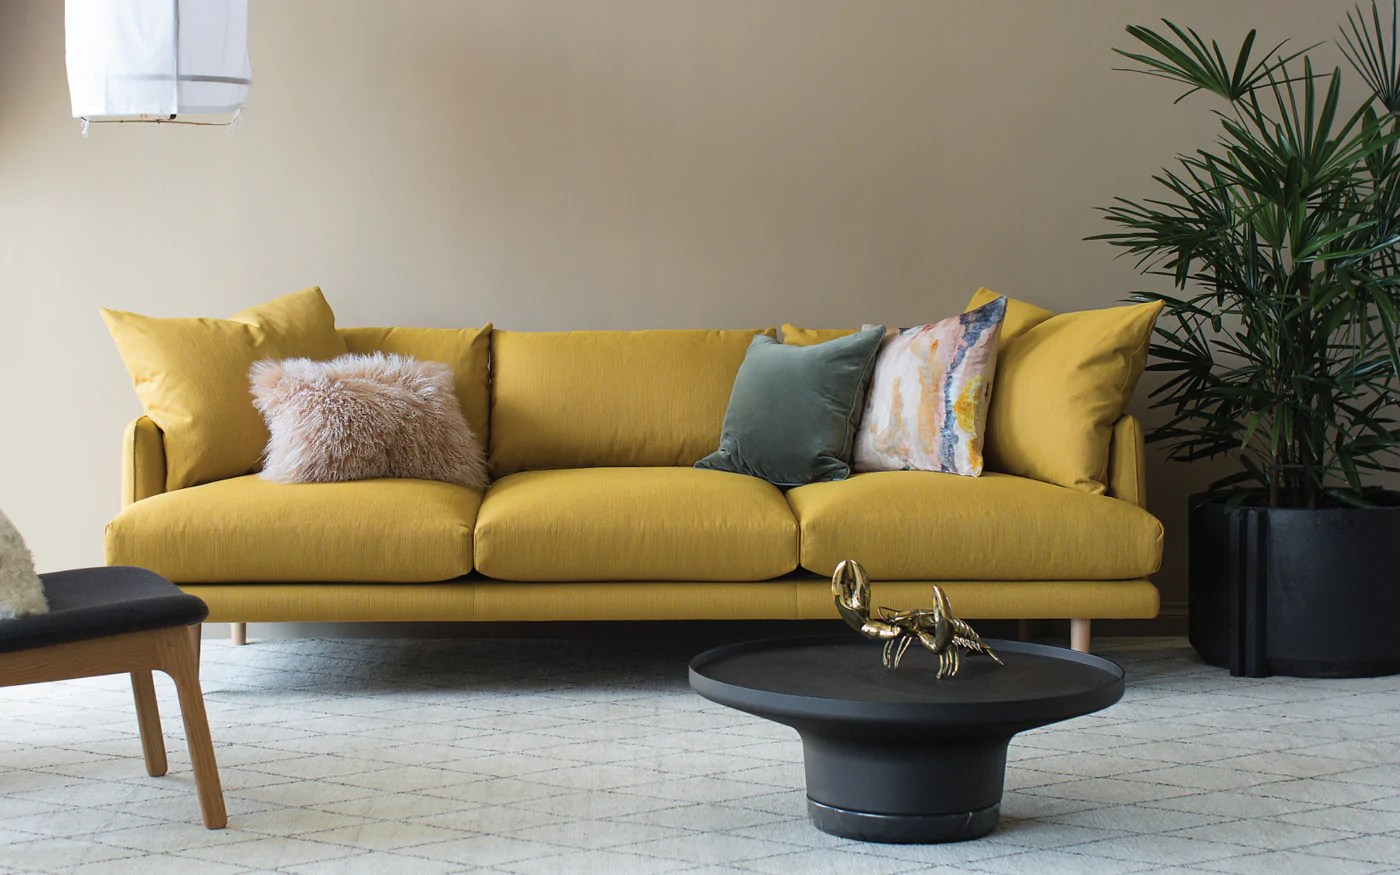 simply sofas crows nest sofa and chair company owner modern european furniture shop melbourne curious grace create your own beautiful comfort